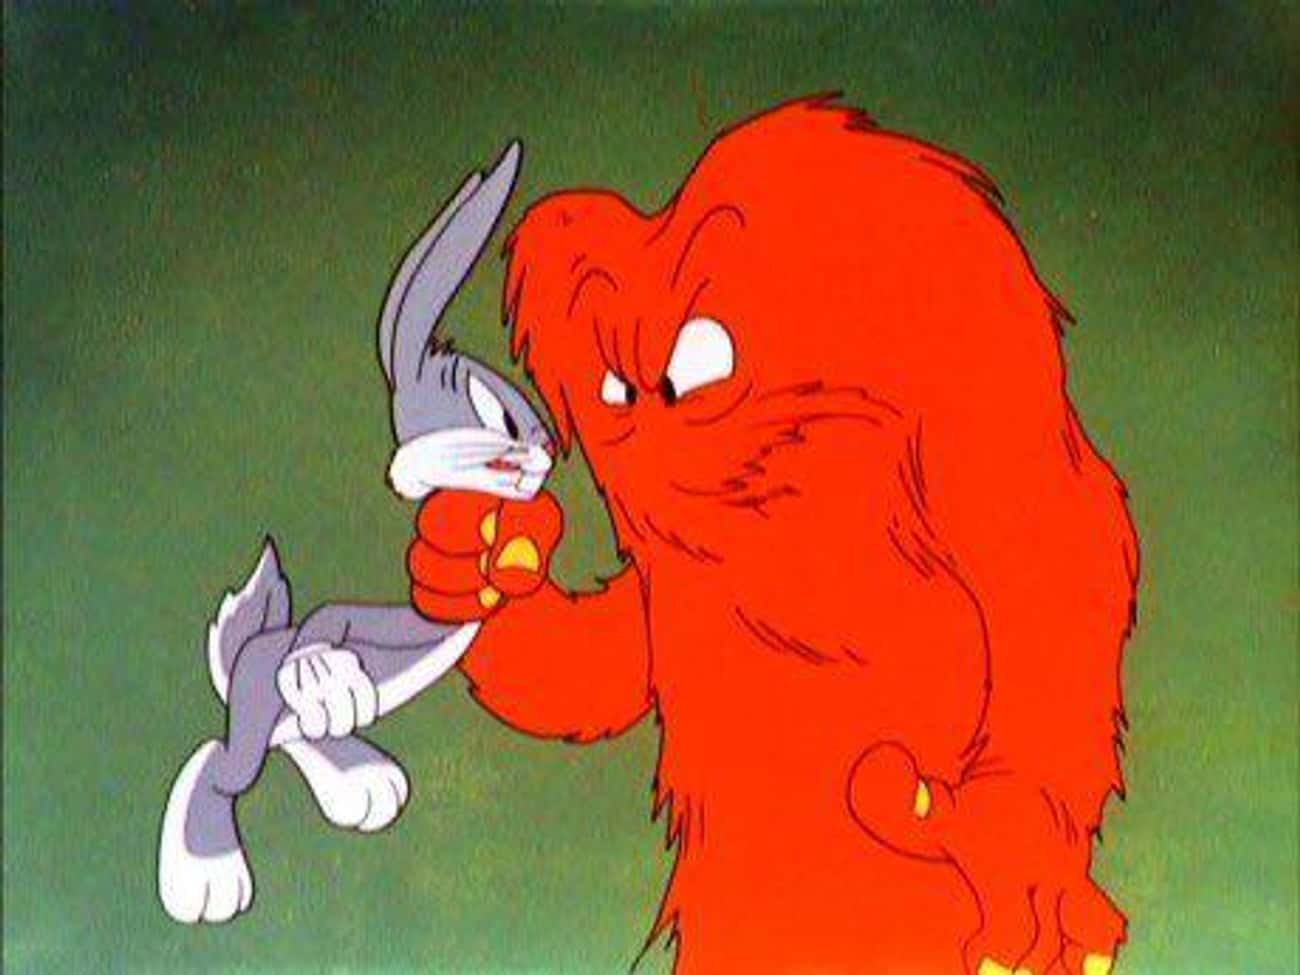 Gossamer is listed (or ranked) 2 on the list The Strongest Characters In 'Looney Tunes'